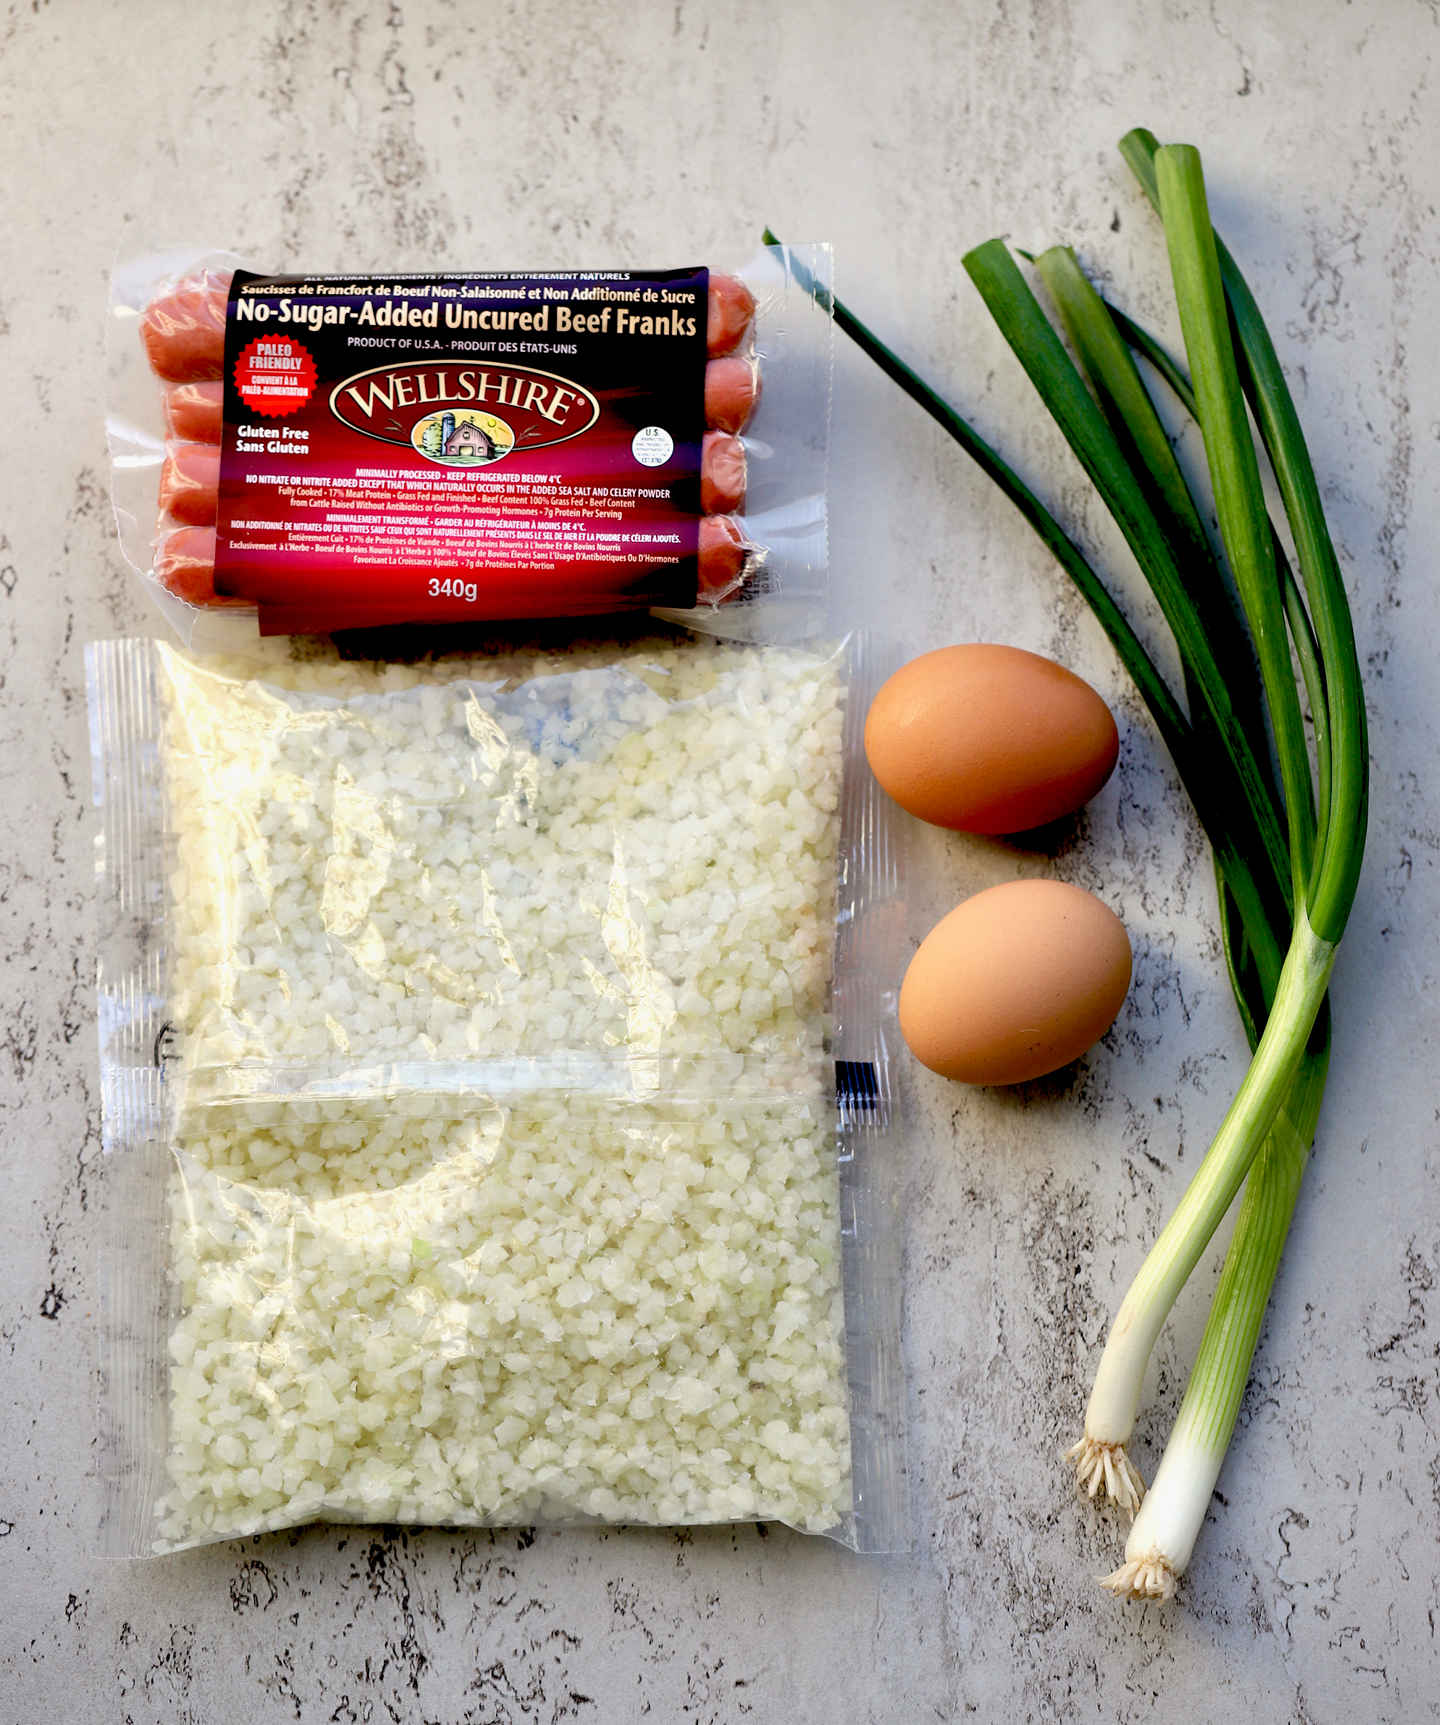 Ingredients for the recipe: frozen cauliflower rice, eggs, all natural sugar-free grass-fed franks, eggs, green onions